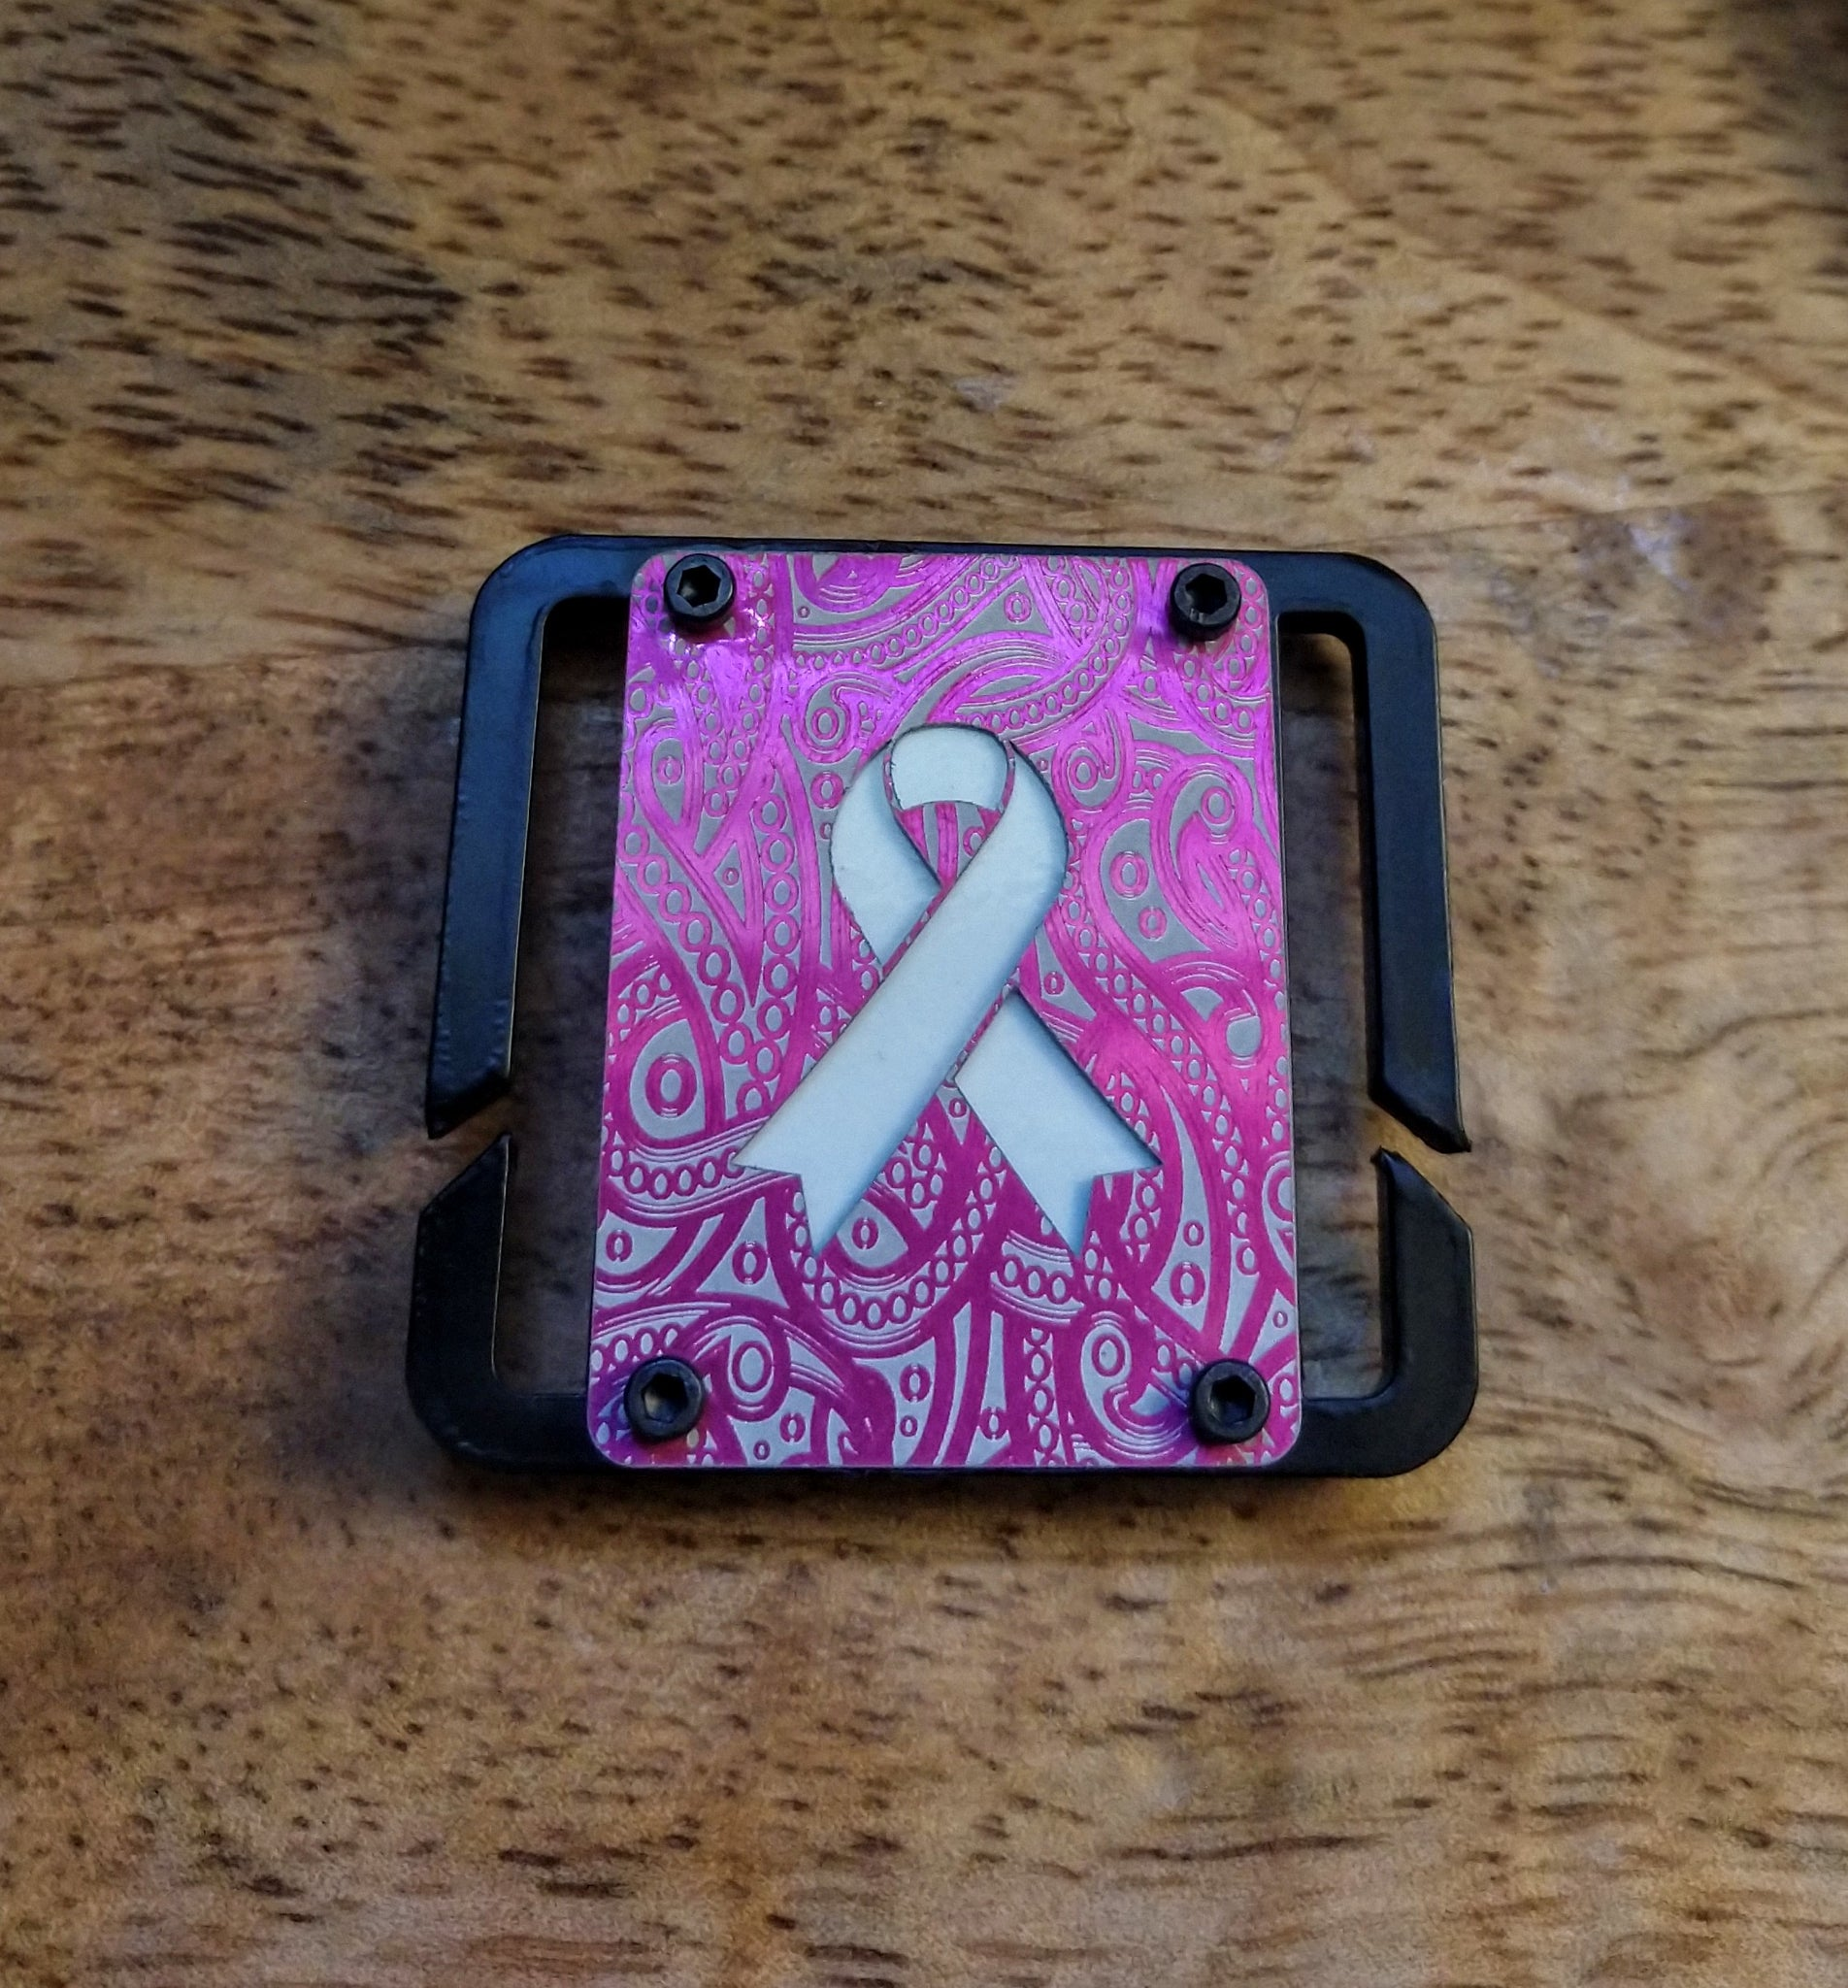 Cancer Awareness PRC